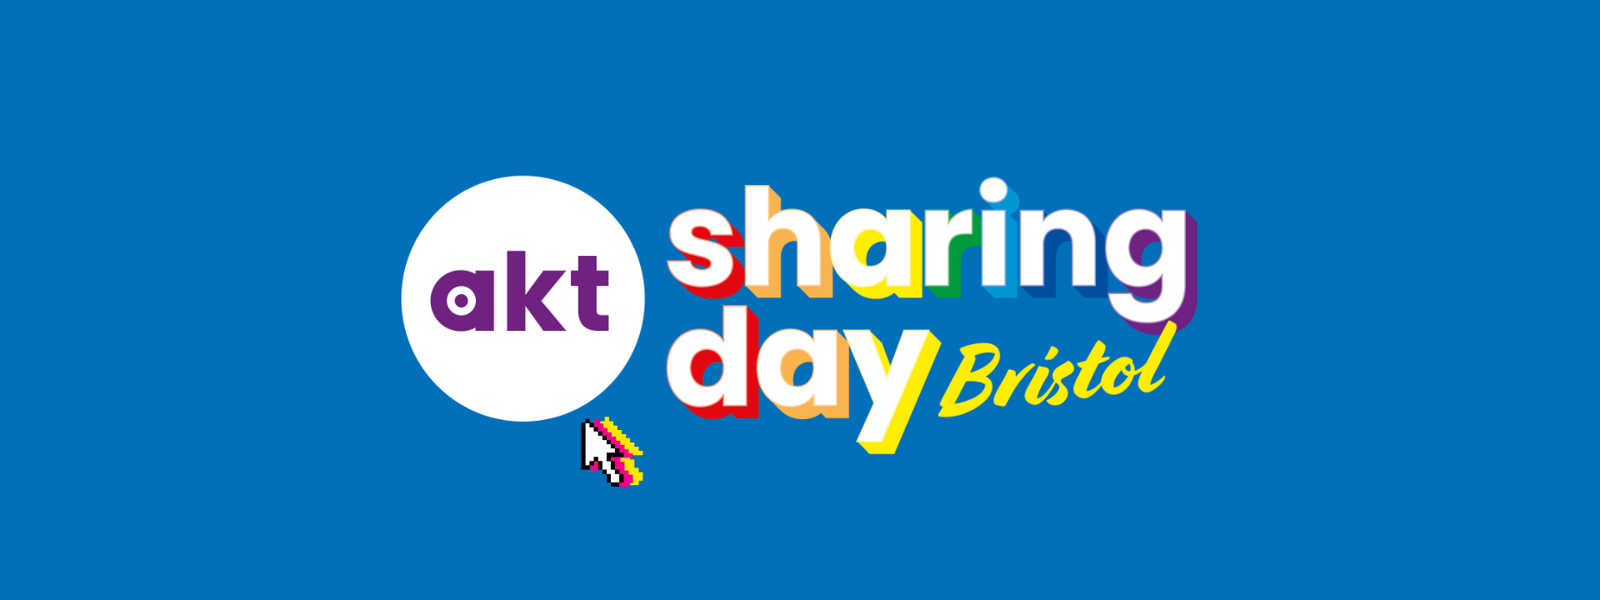 Online Sharing Day with akt in Bristol